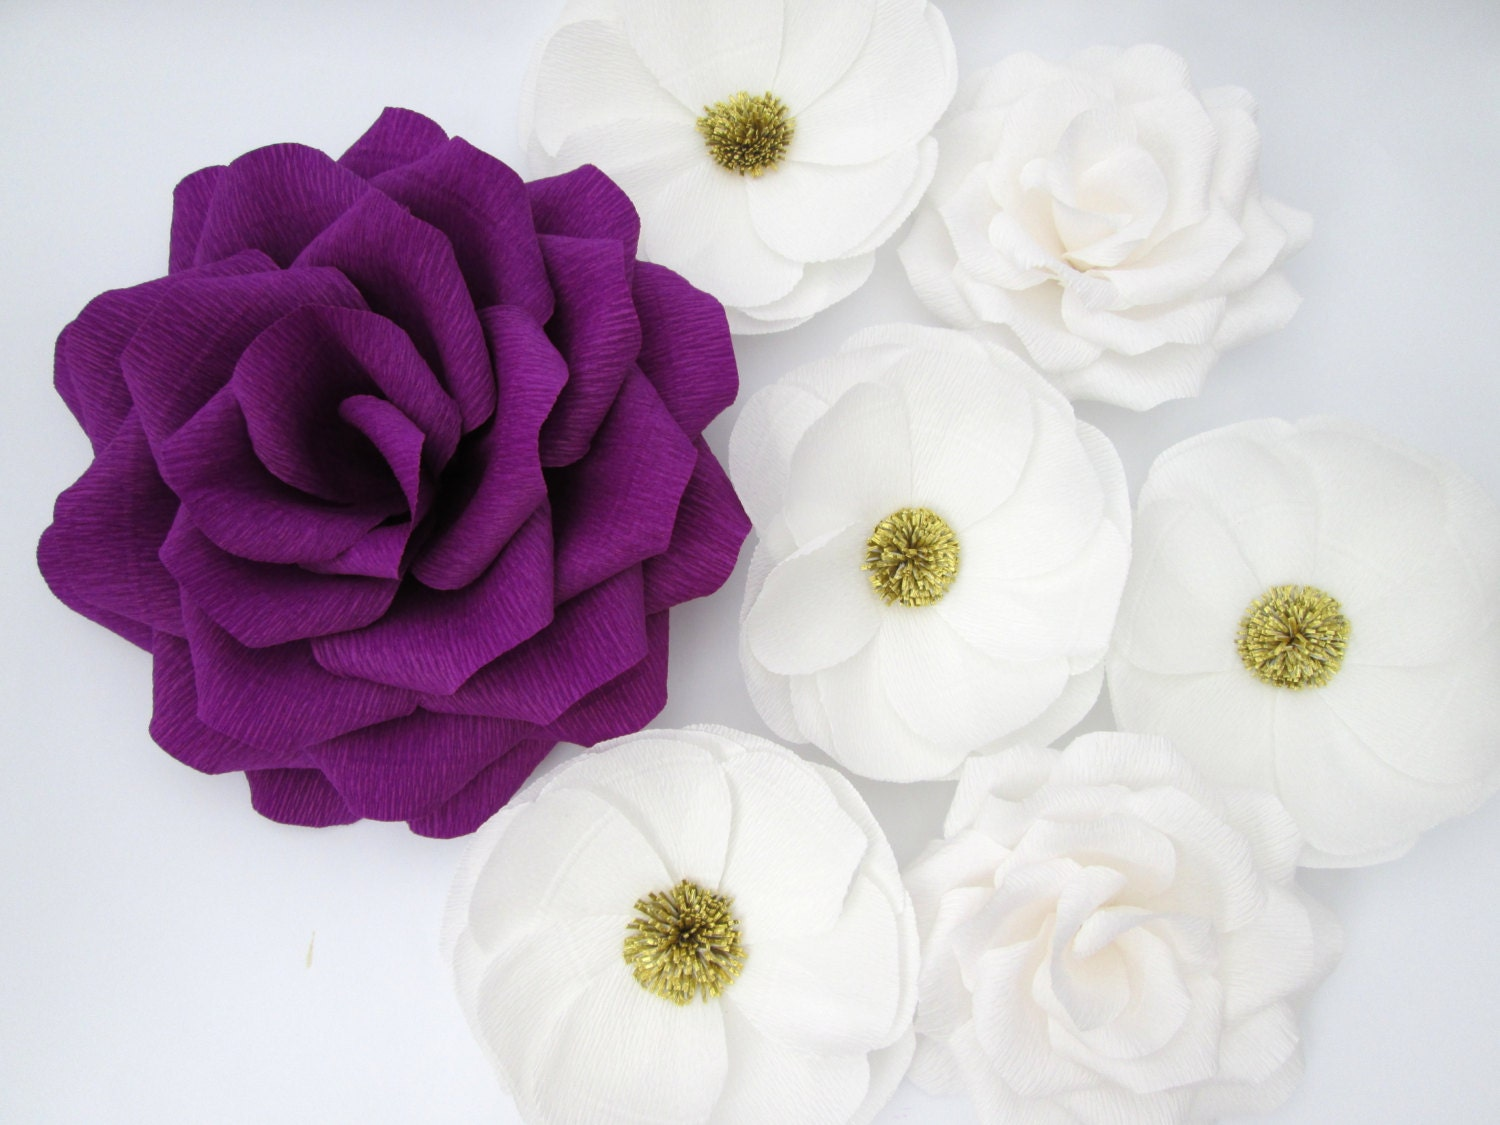 7 large paper flowers large paper roses wedding for Decoration flowers